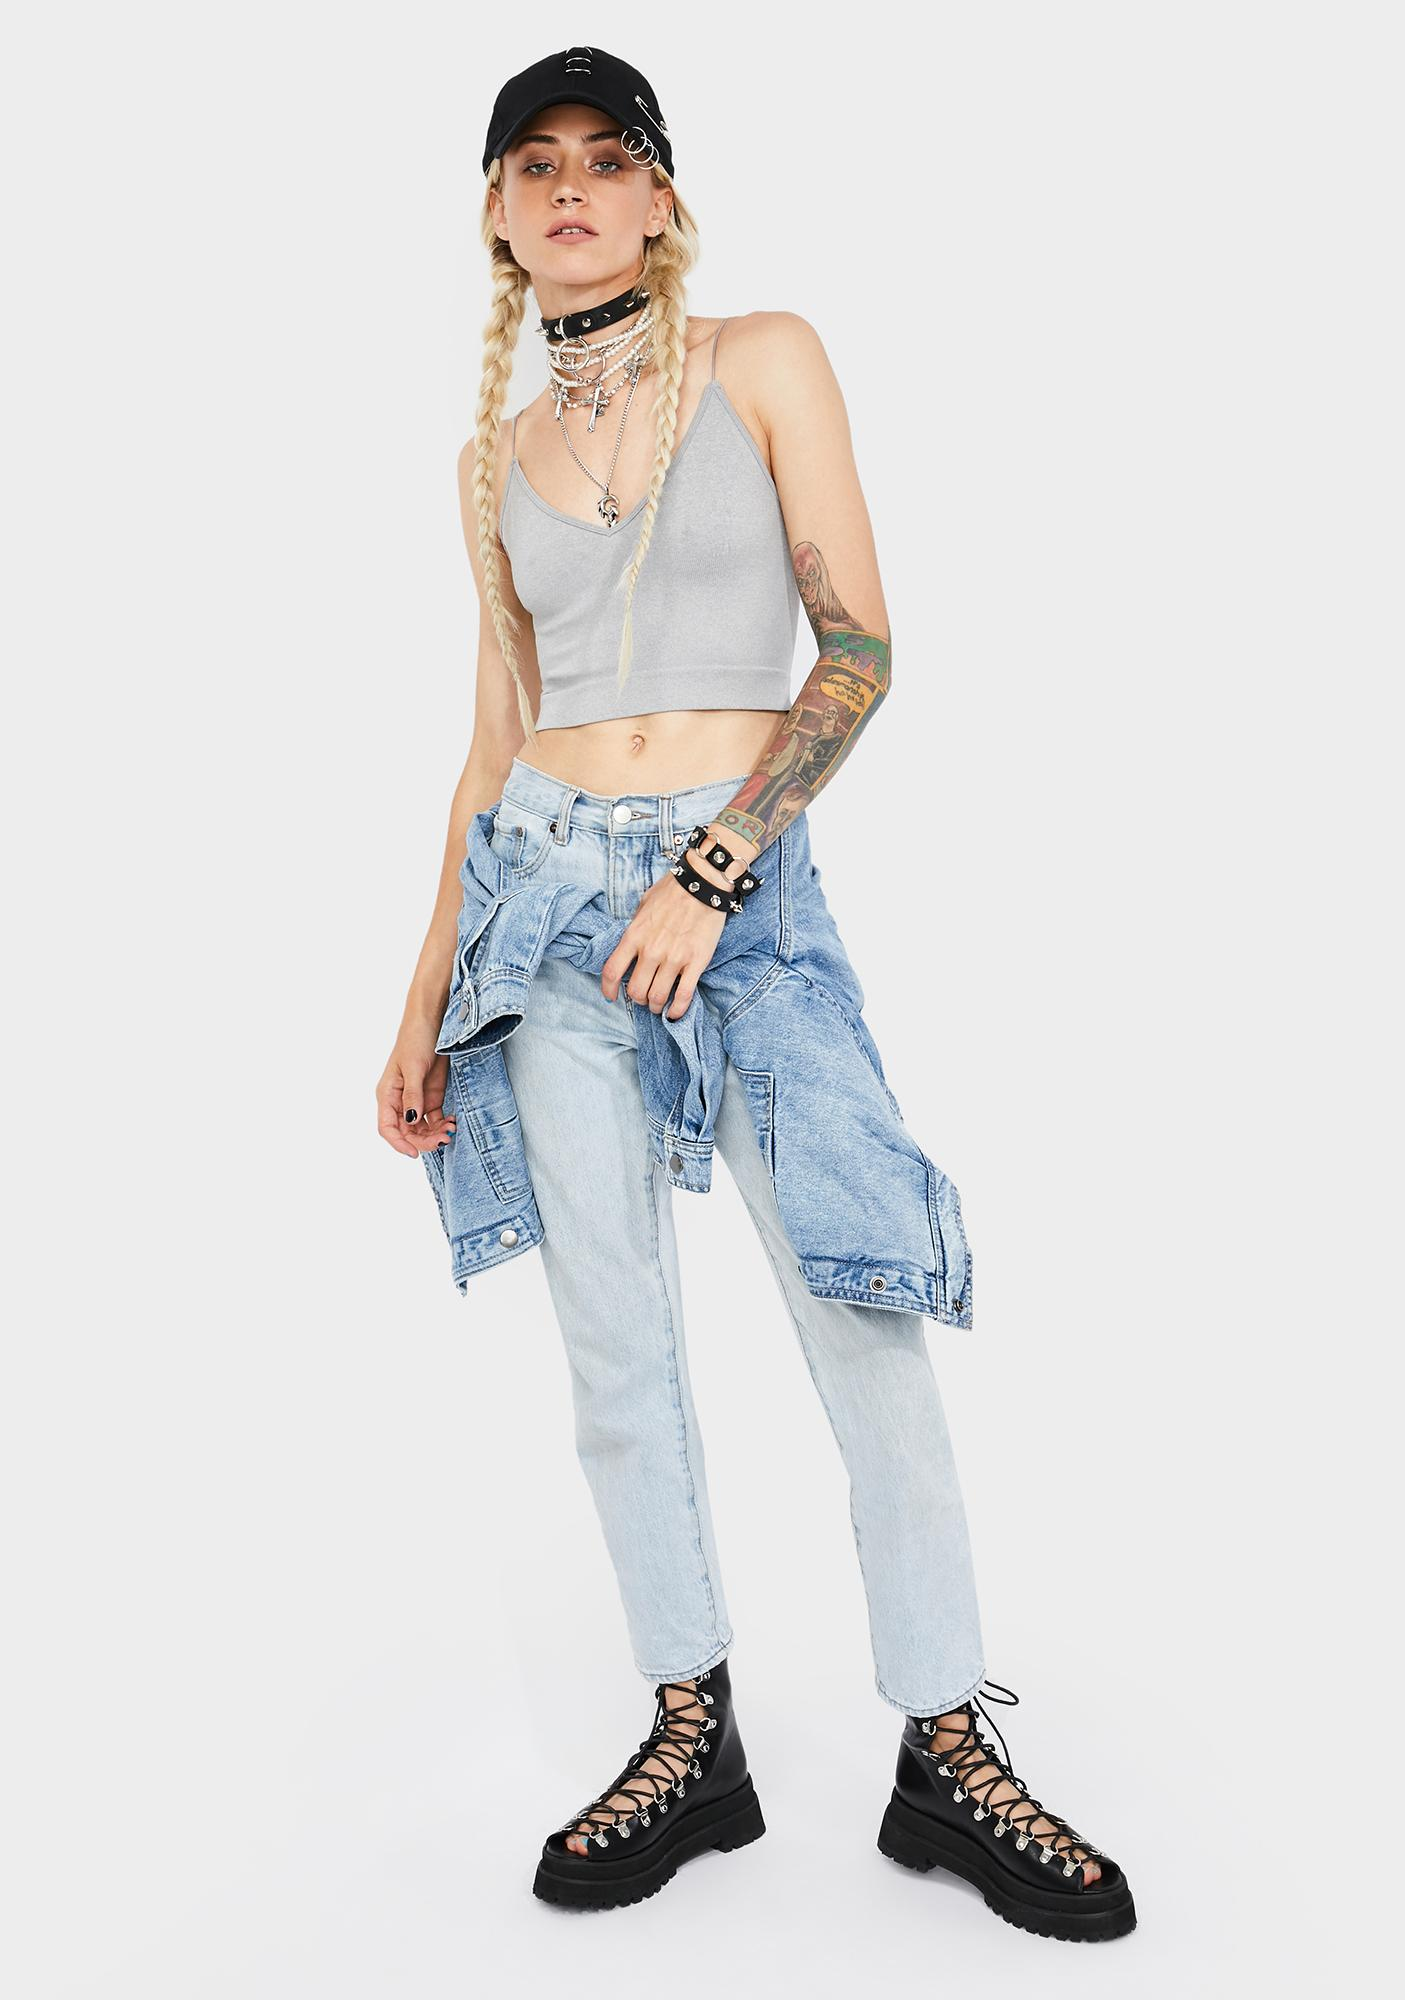 Free People Heather Grey Ribbed V-Neck Brami Top